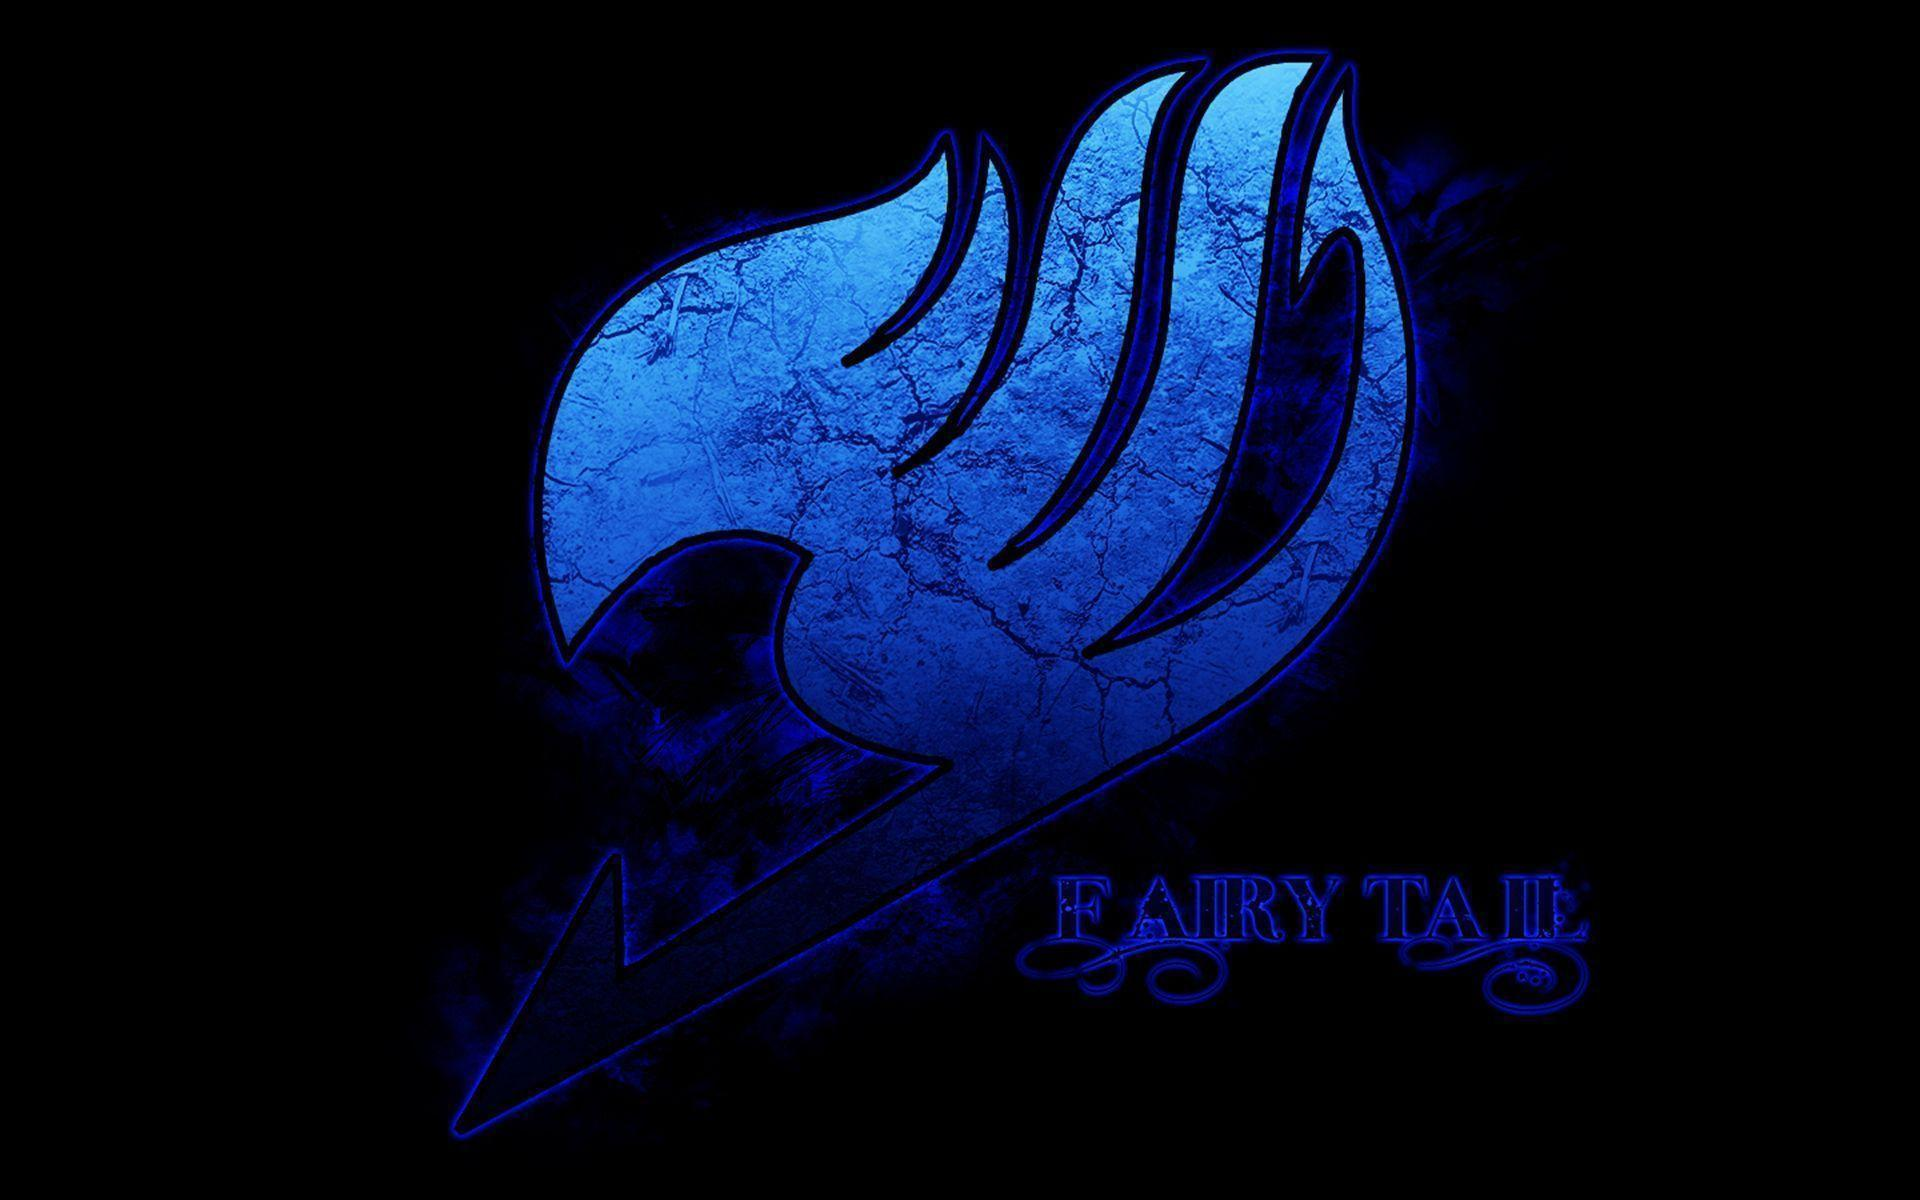 Fairytail 2015 Wallpapers